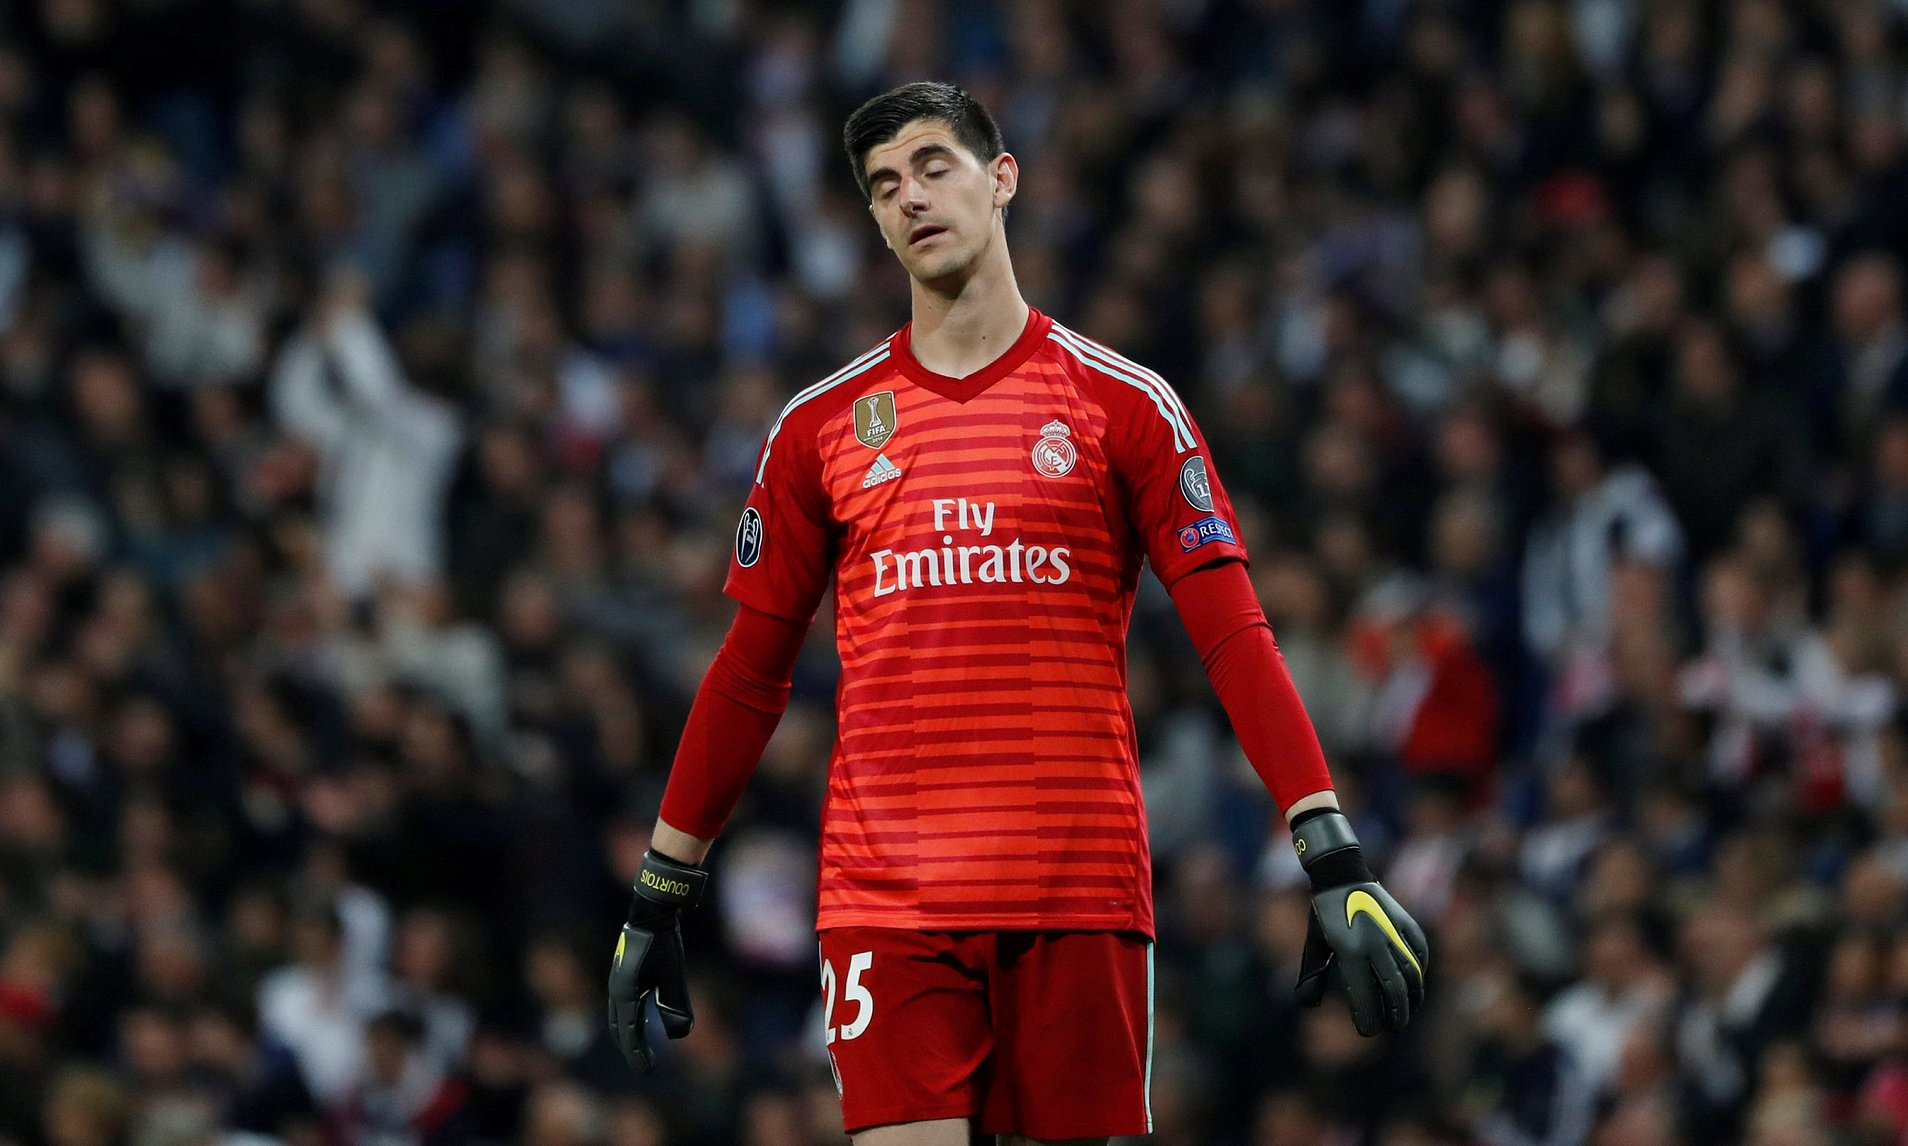 Zidane DROPS Courtois, recalls Keylor Navas to Madrid's first XI